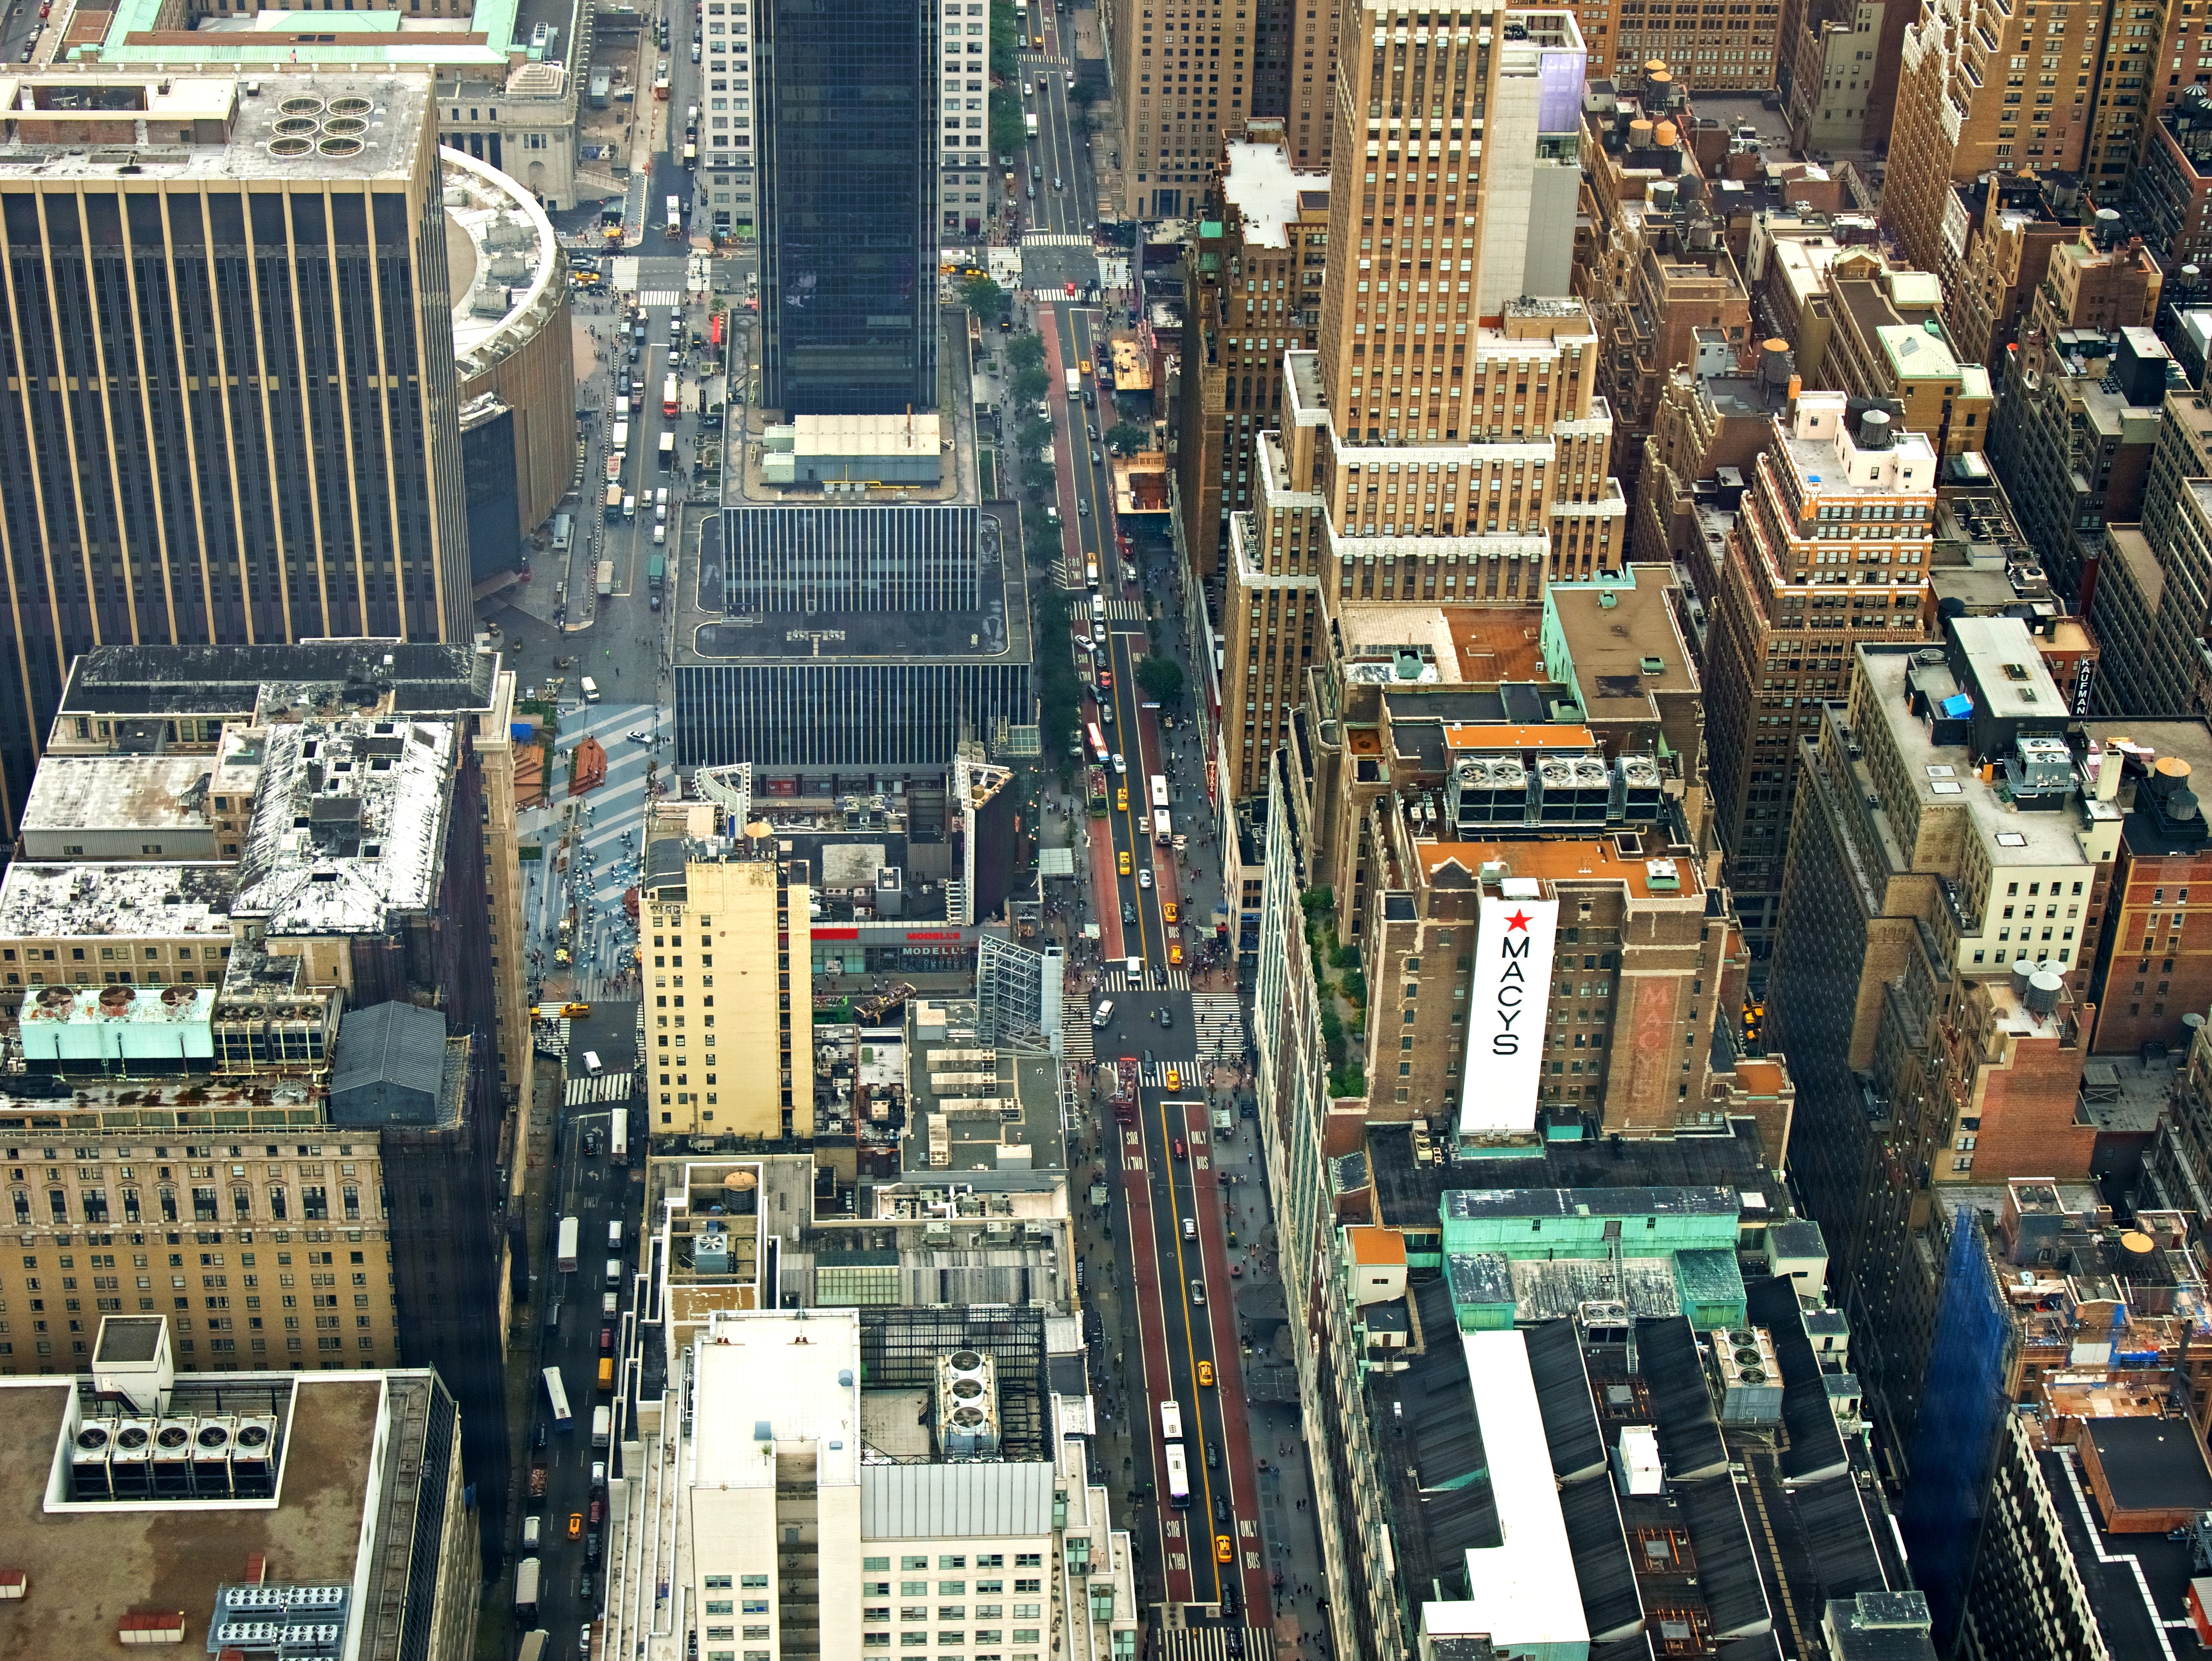 Drone view of the rooftops of buildings and the busy New York City streets